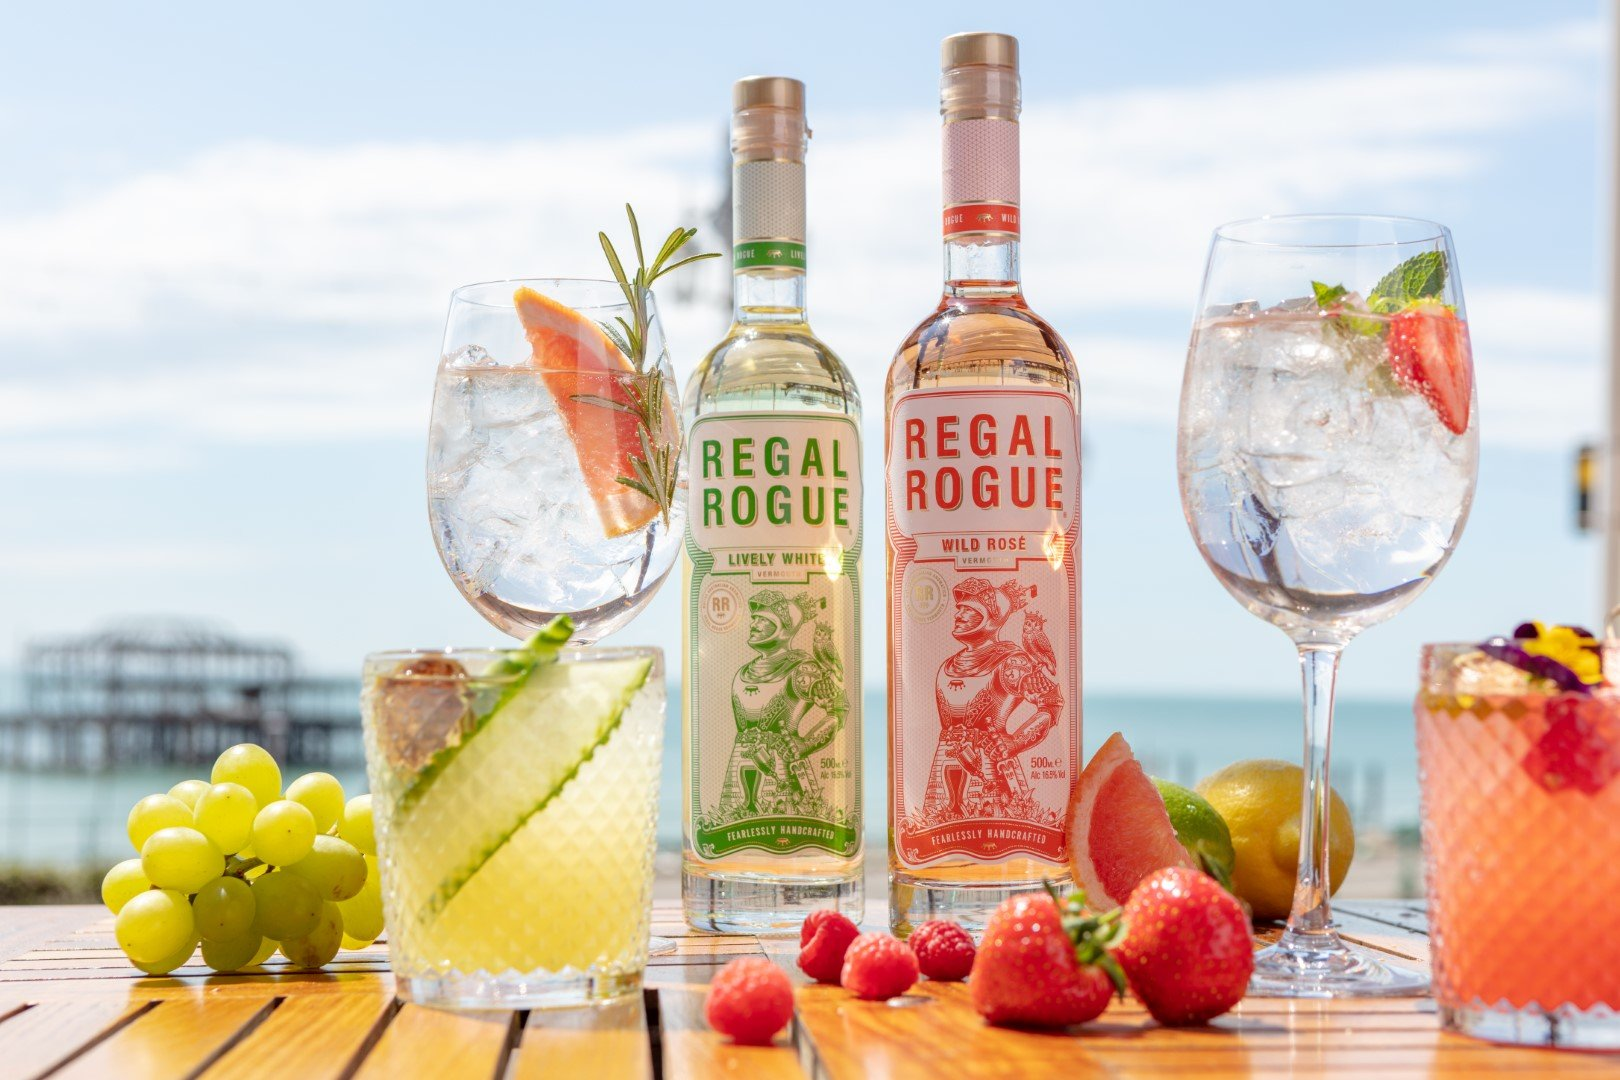 Regal Rogue Vermouth Wild Rose